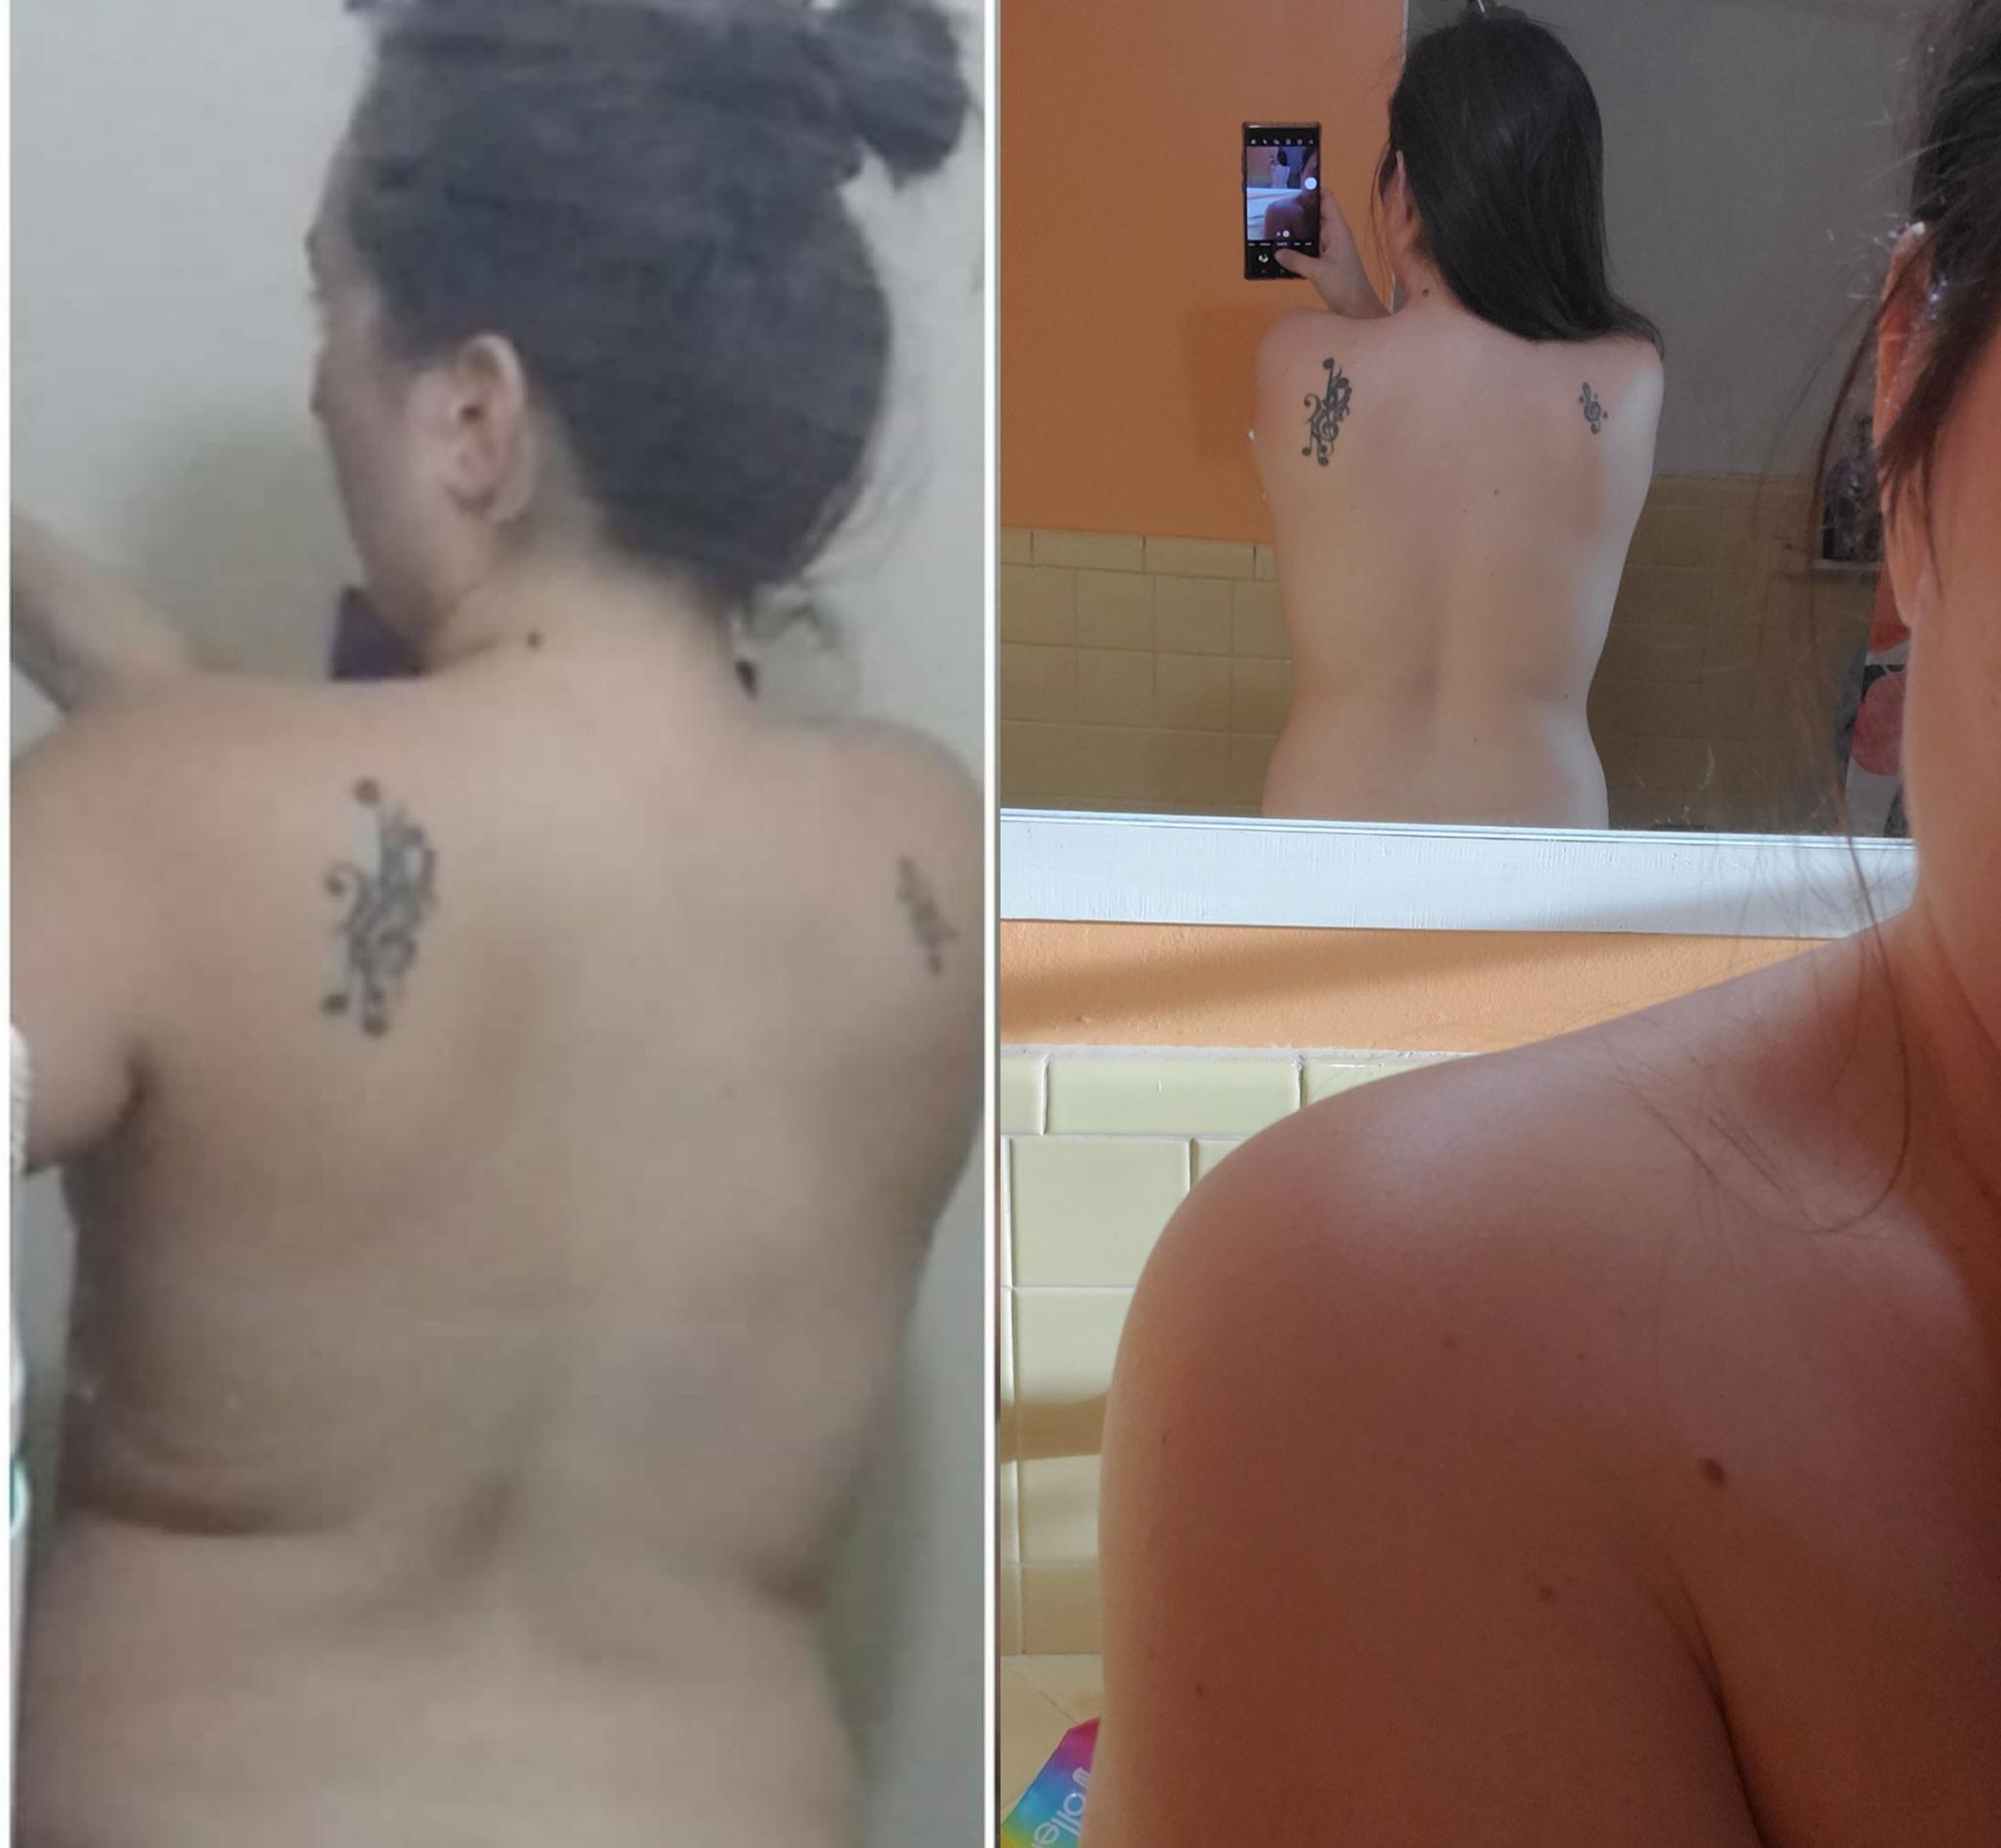 Before and After 24 lbs Weight Loss 5'2 Female 171 lbs to 147 lbs